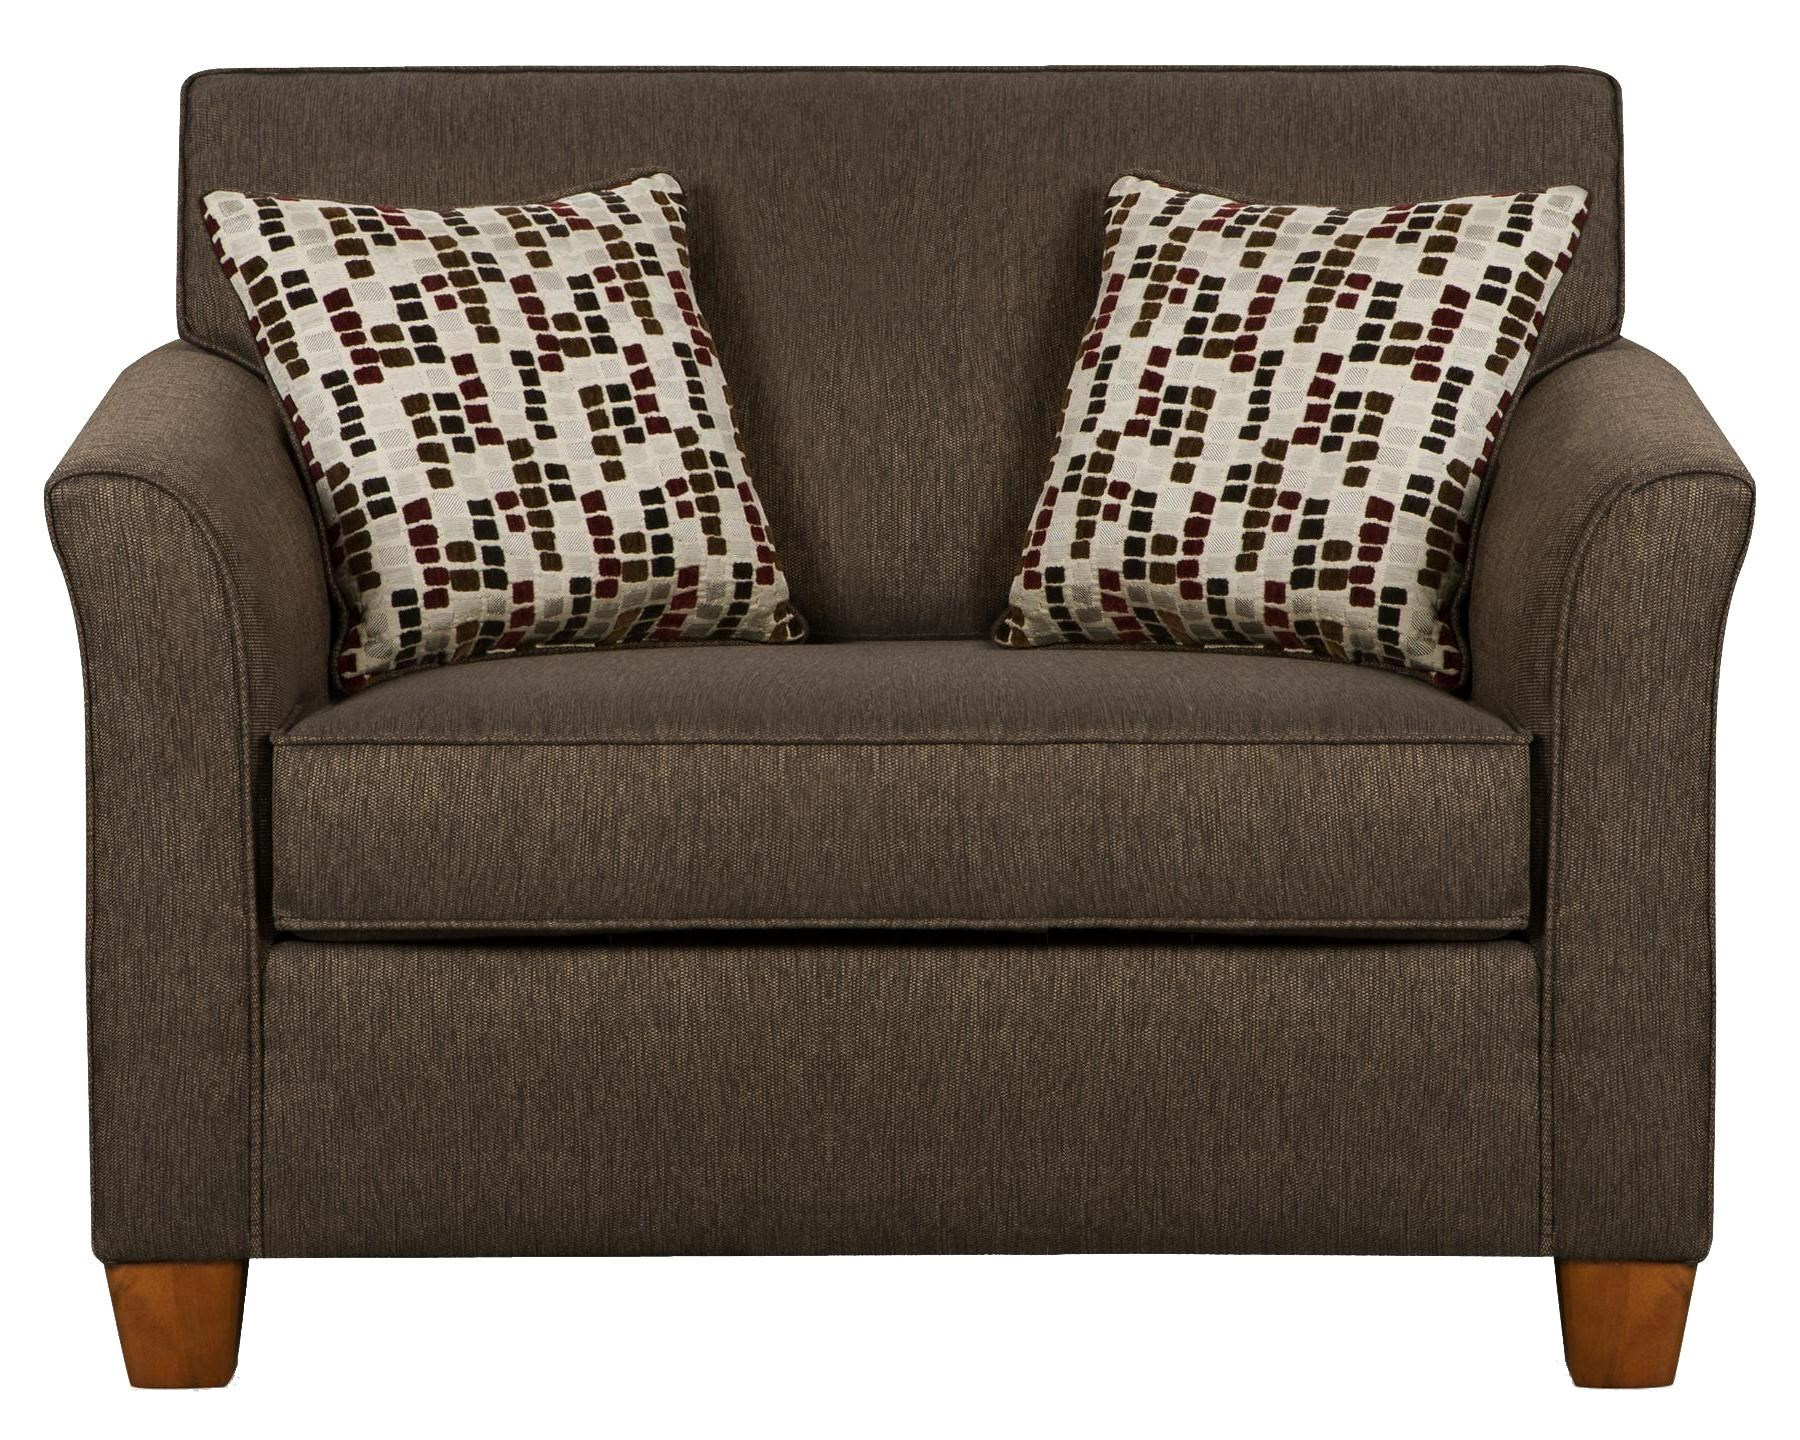 7251 Twin Size Sofa Sleeper In Casual Furniture Style By Simmons Upholstery